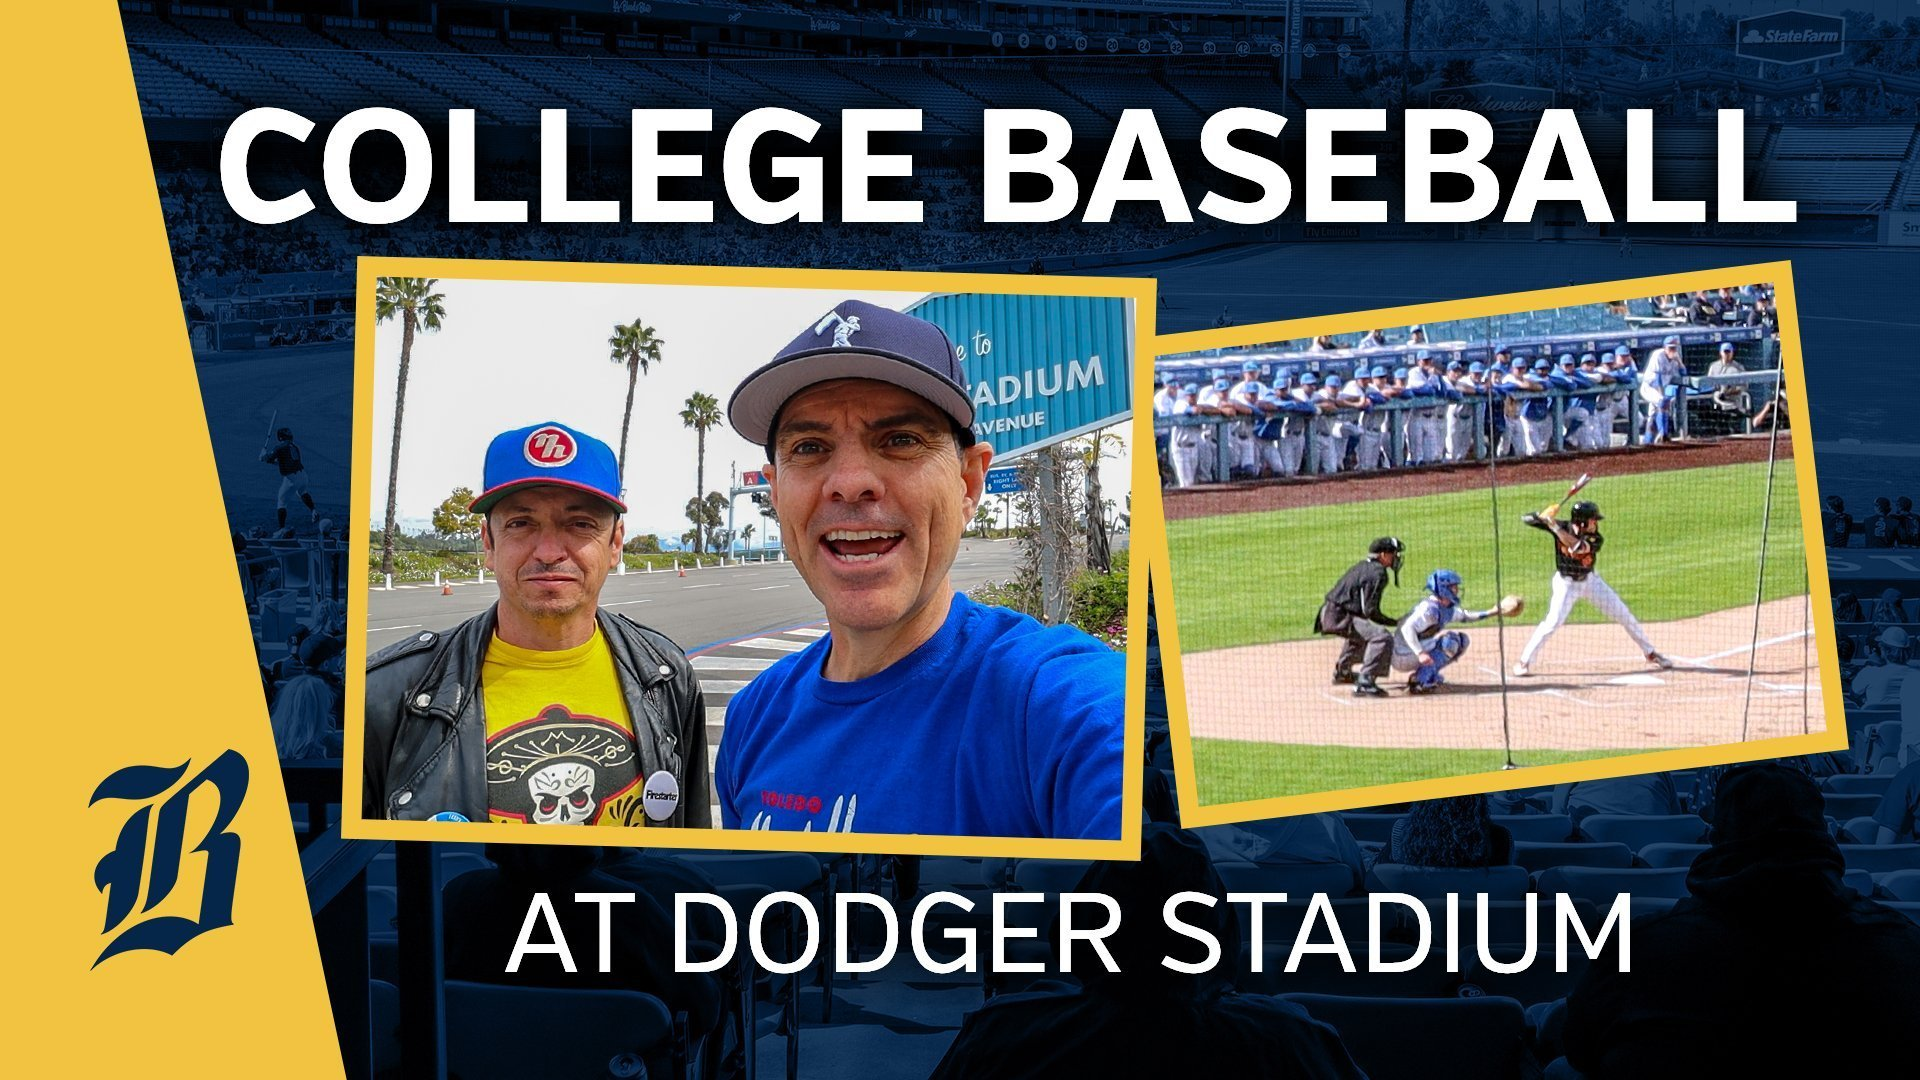 Dodgertown Classic 2019 College Baseball At Dodger Stadium